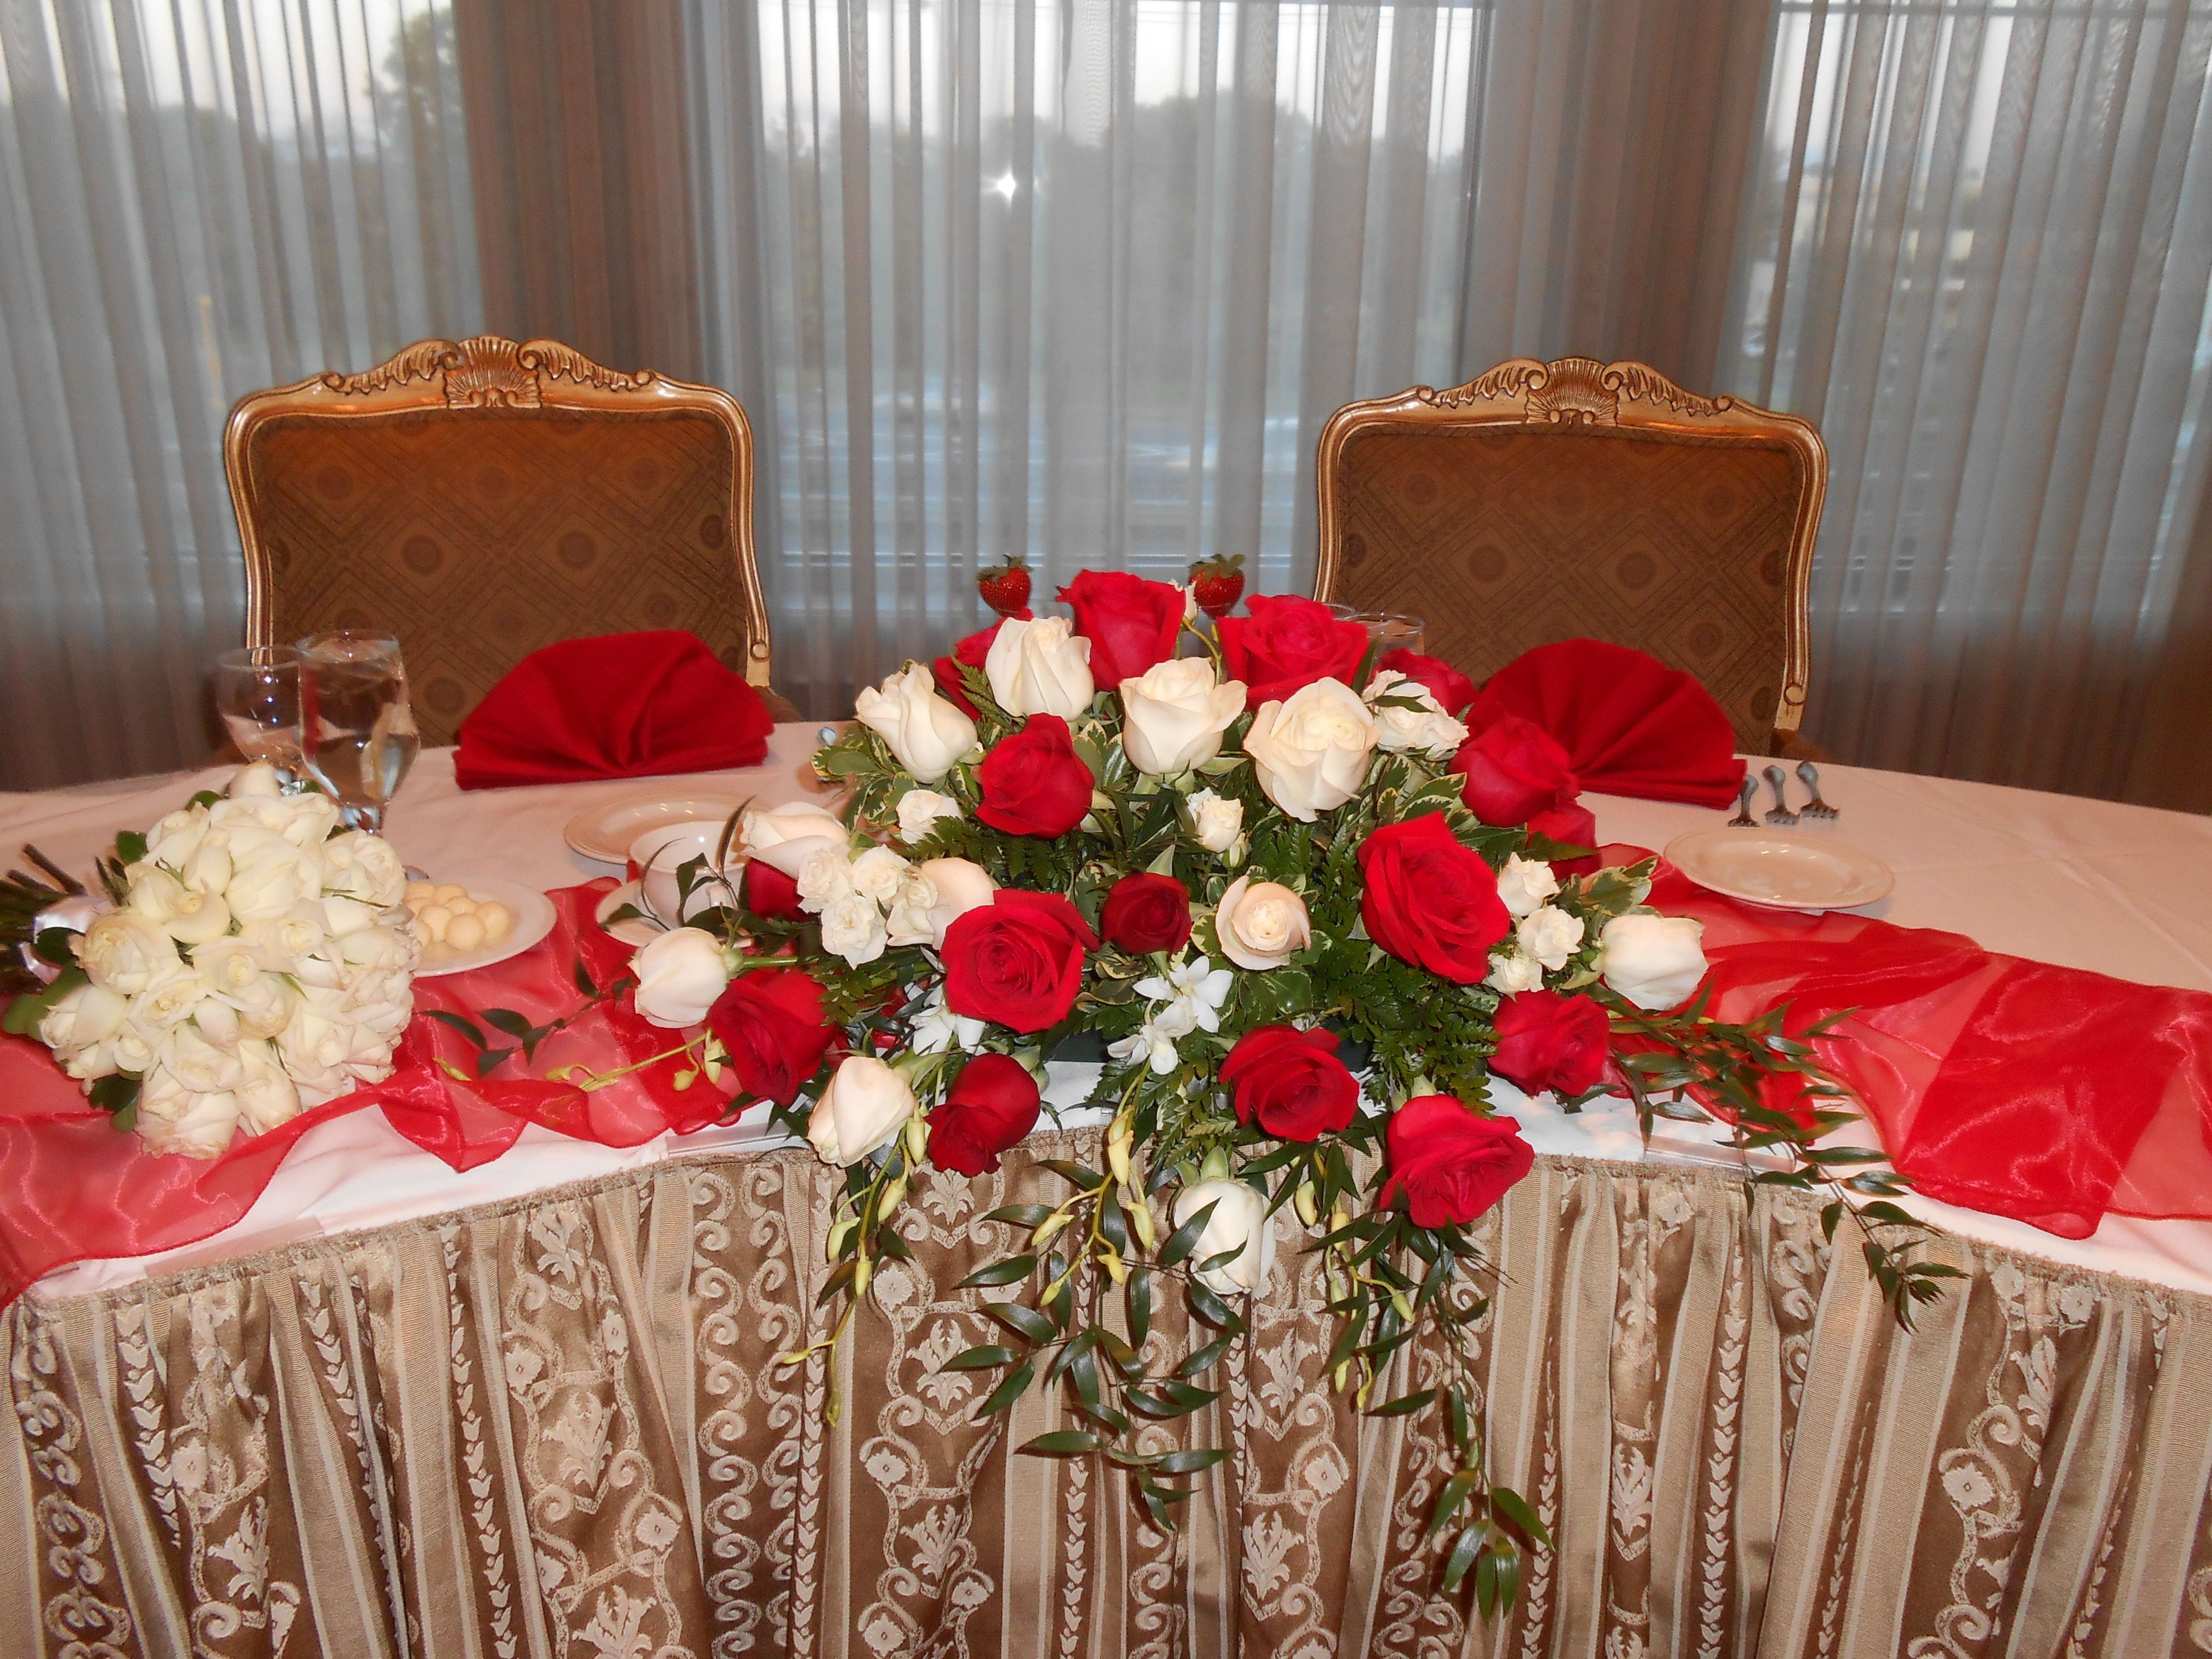 #Sweetheart Table For The #Bride And #Groom